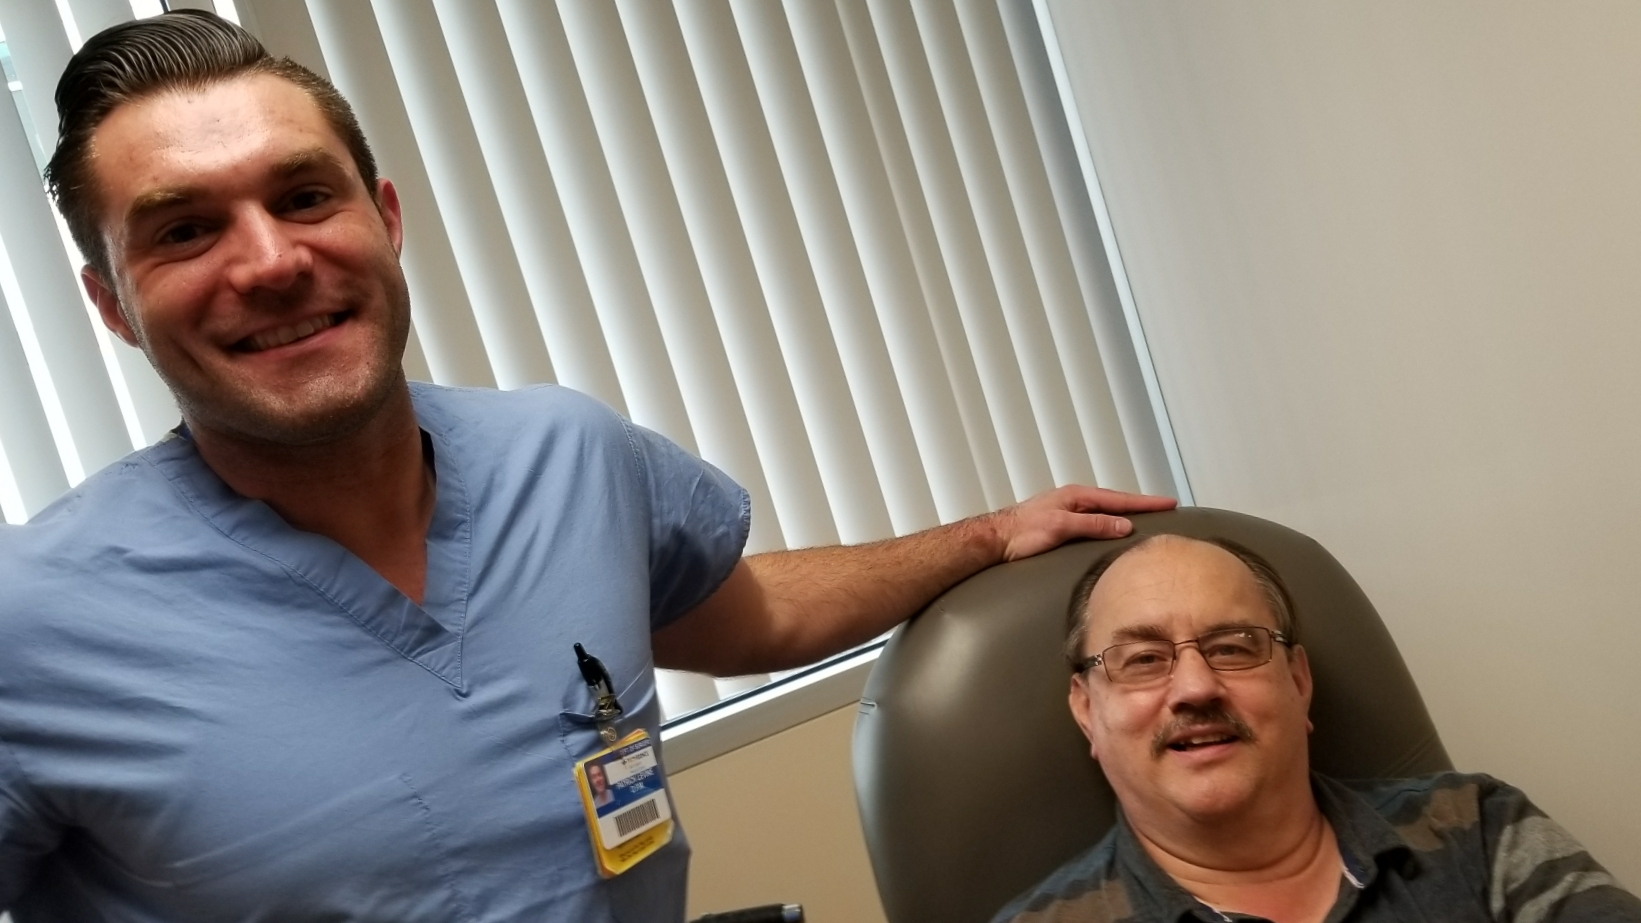 Dr. Levine with a long-time patient in the office